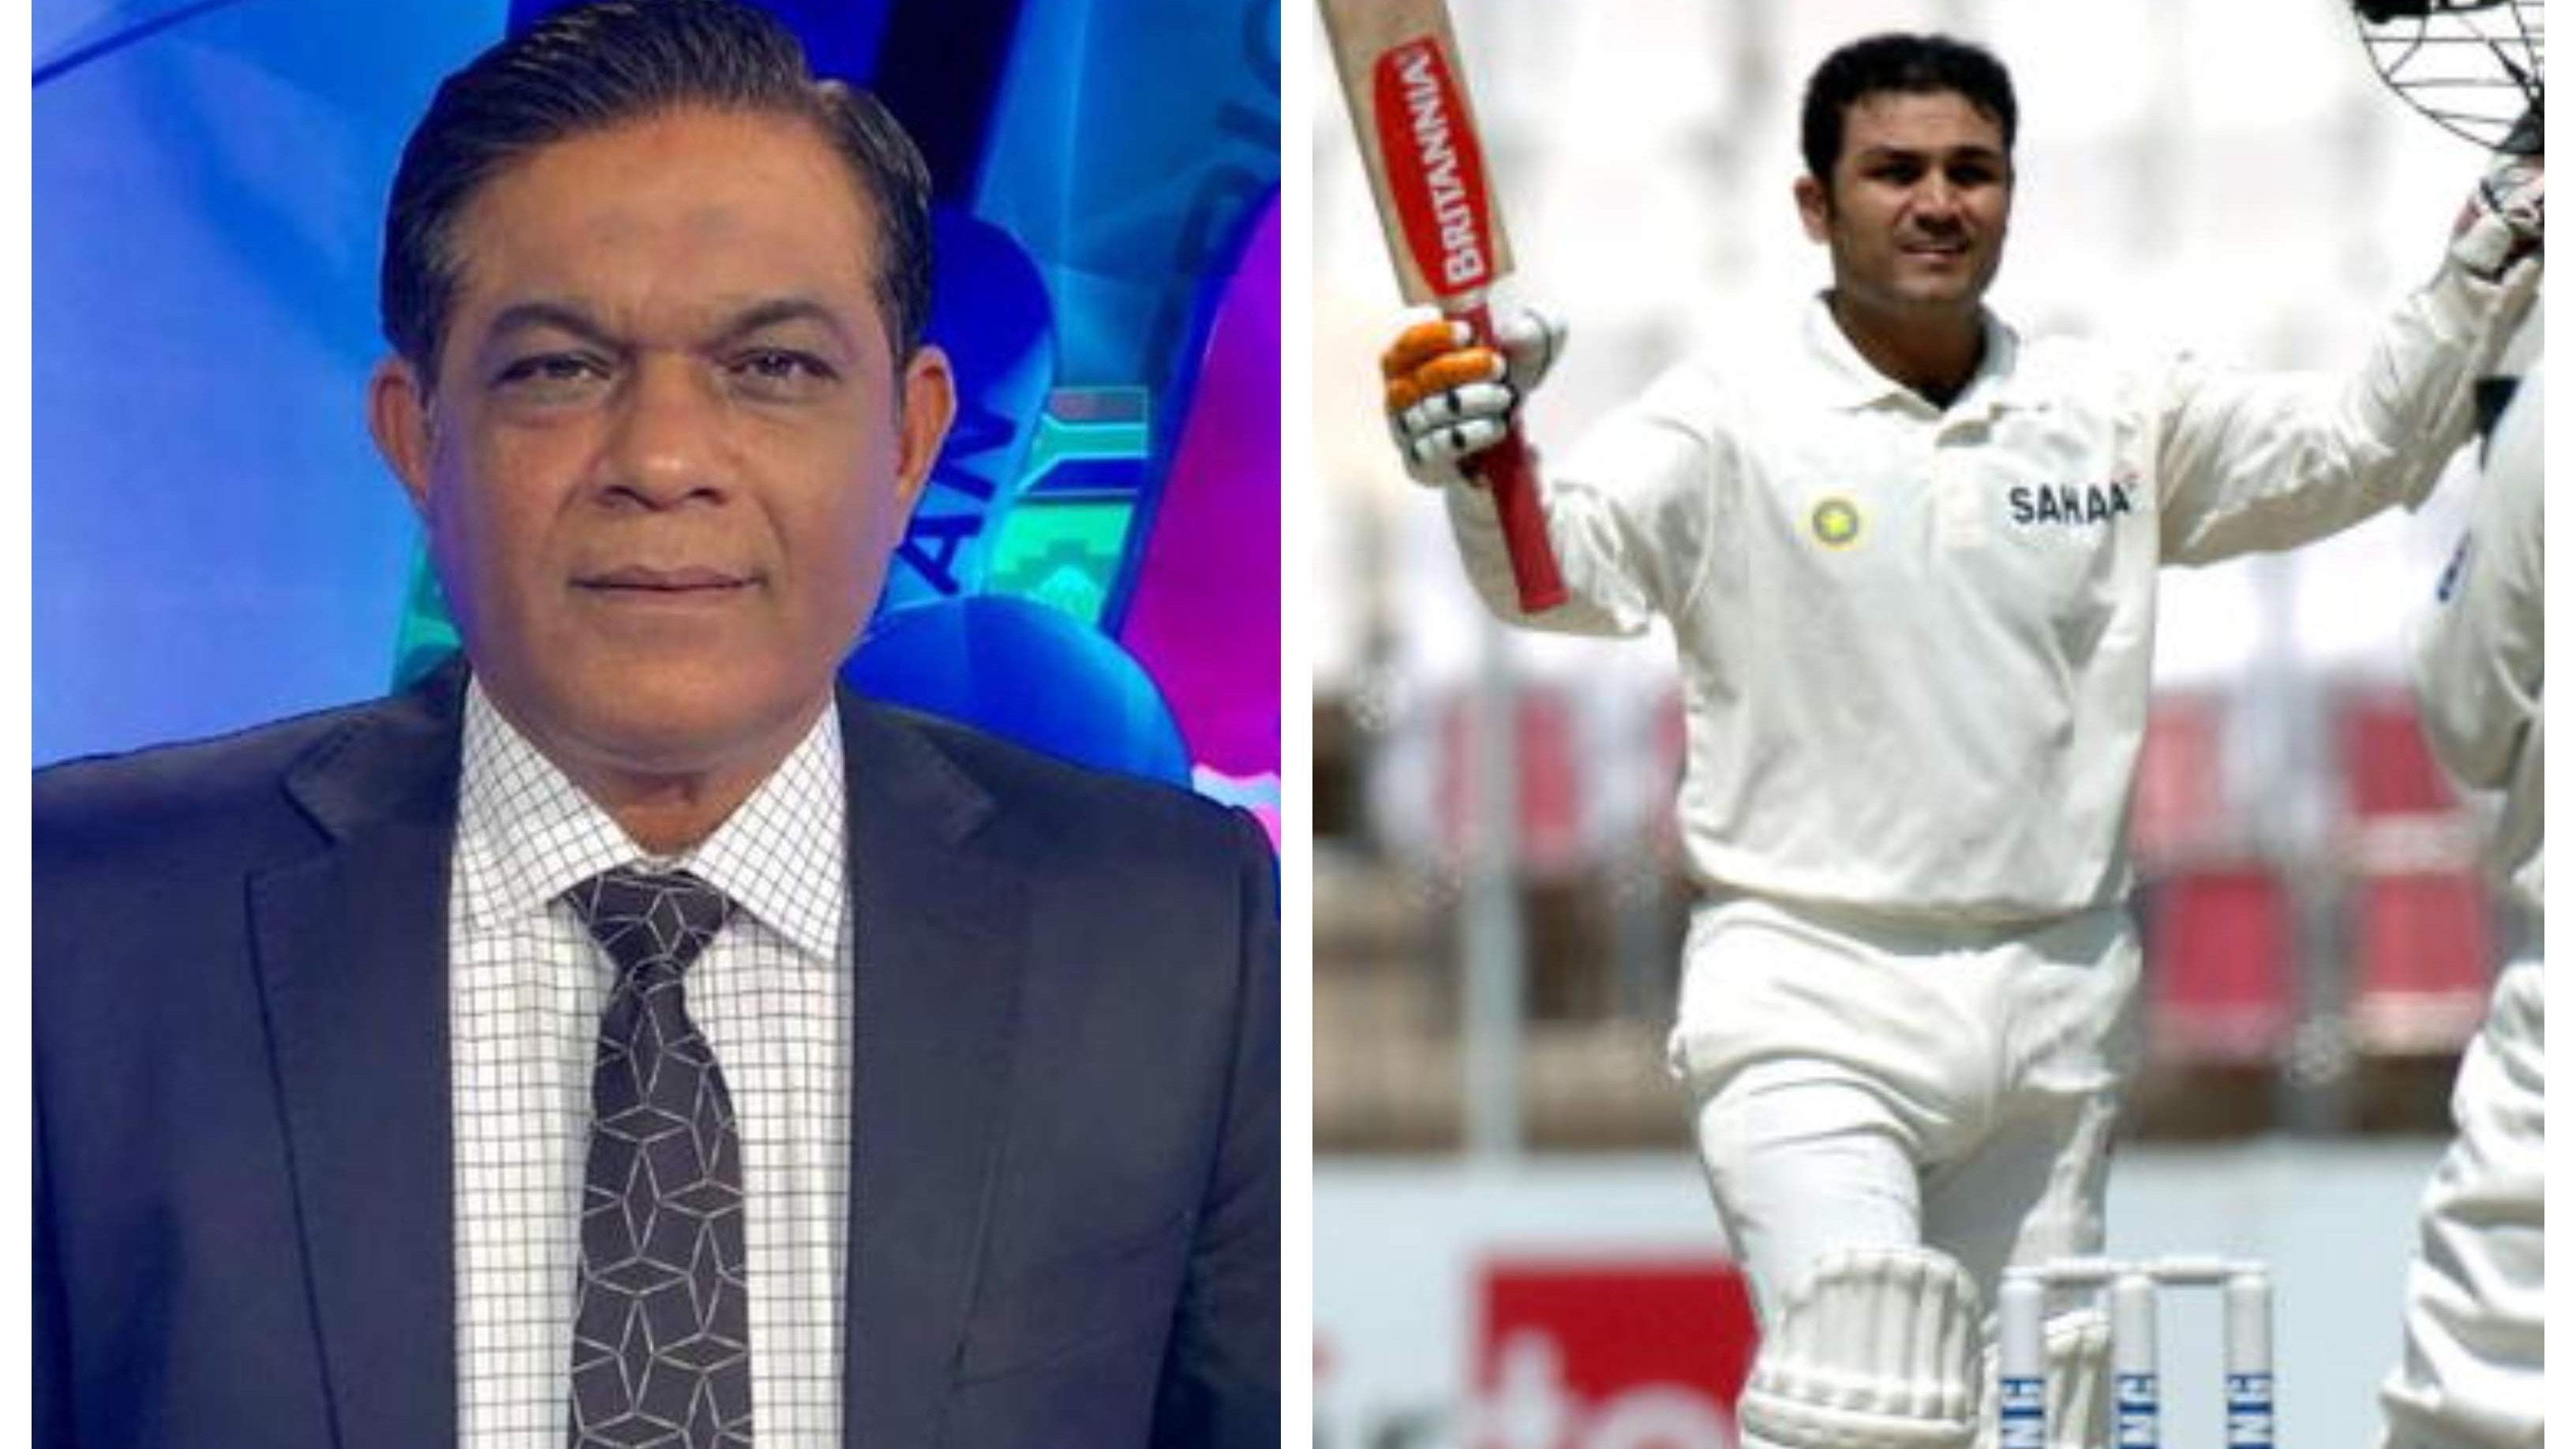 Sehwag would've easily crossed 10,000 Test runs had he played for another country: Rashid Latif